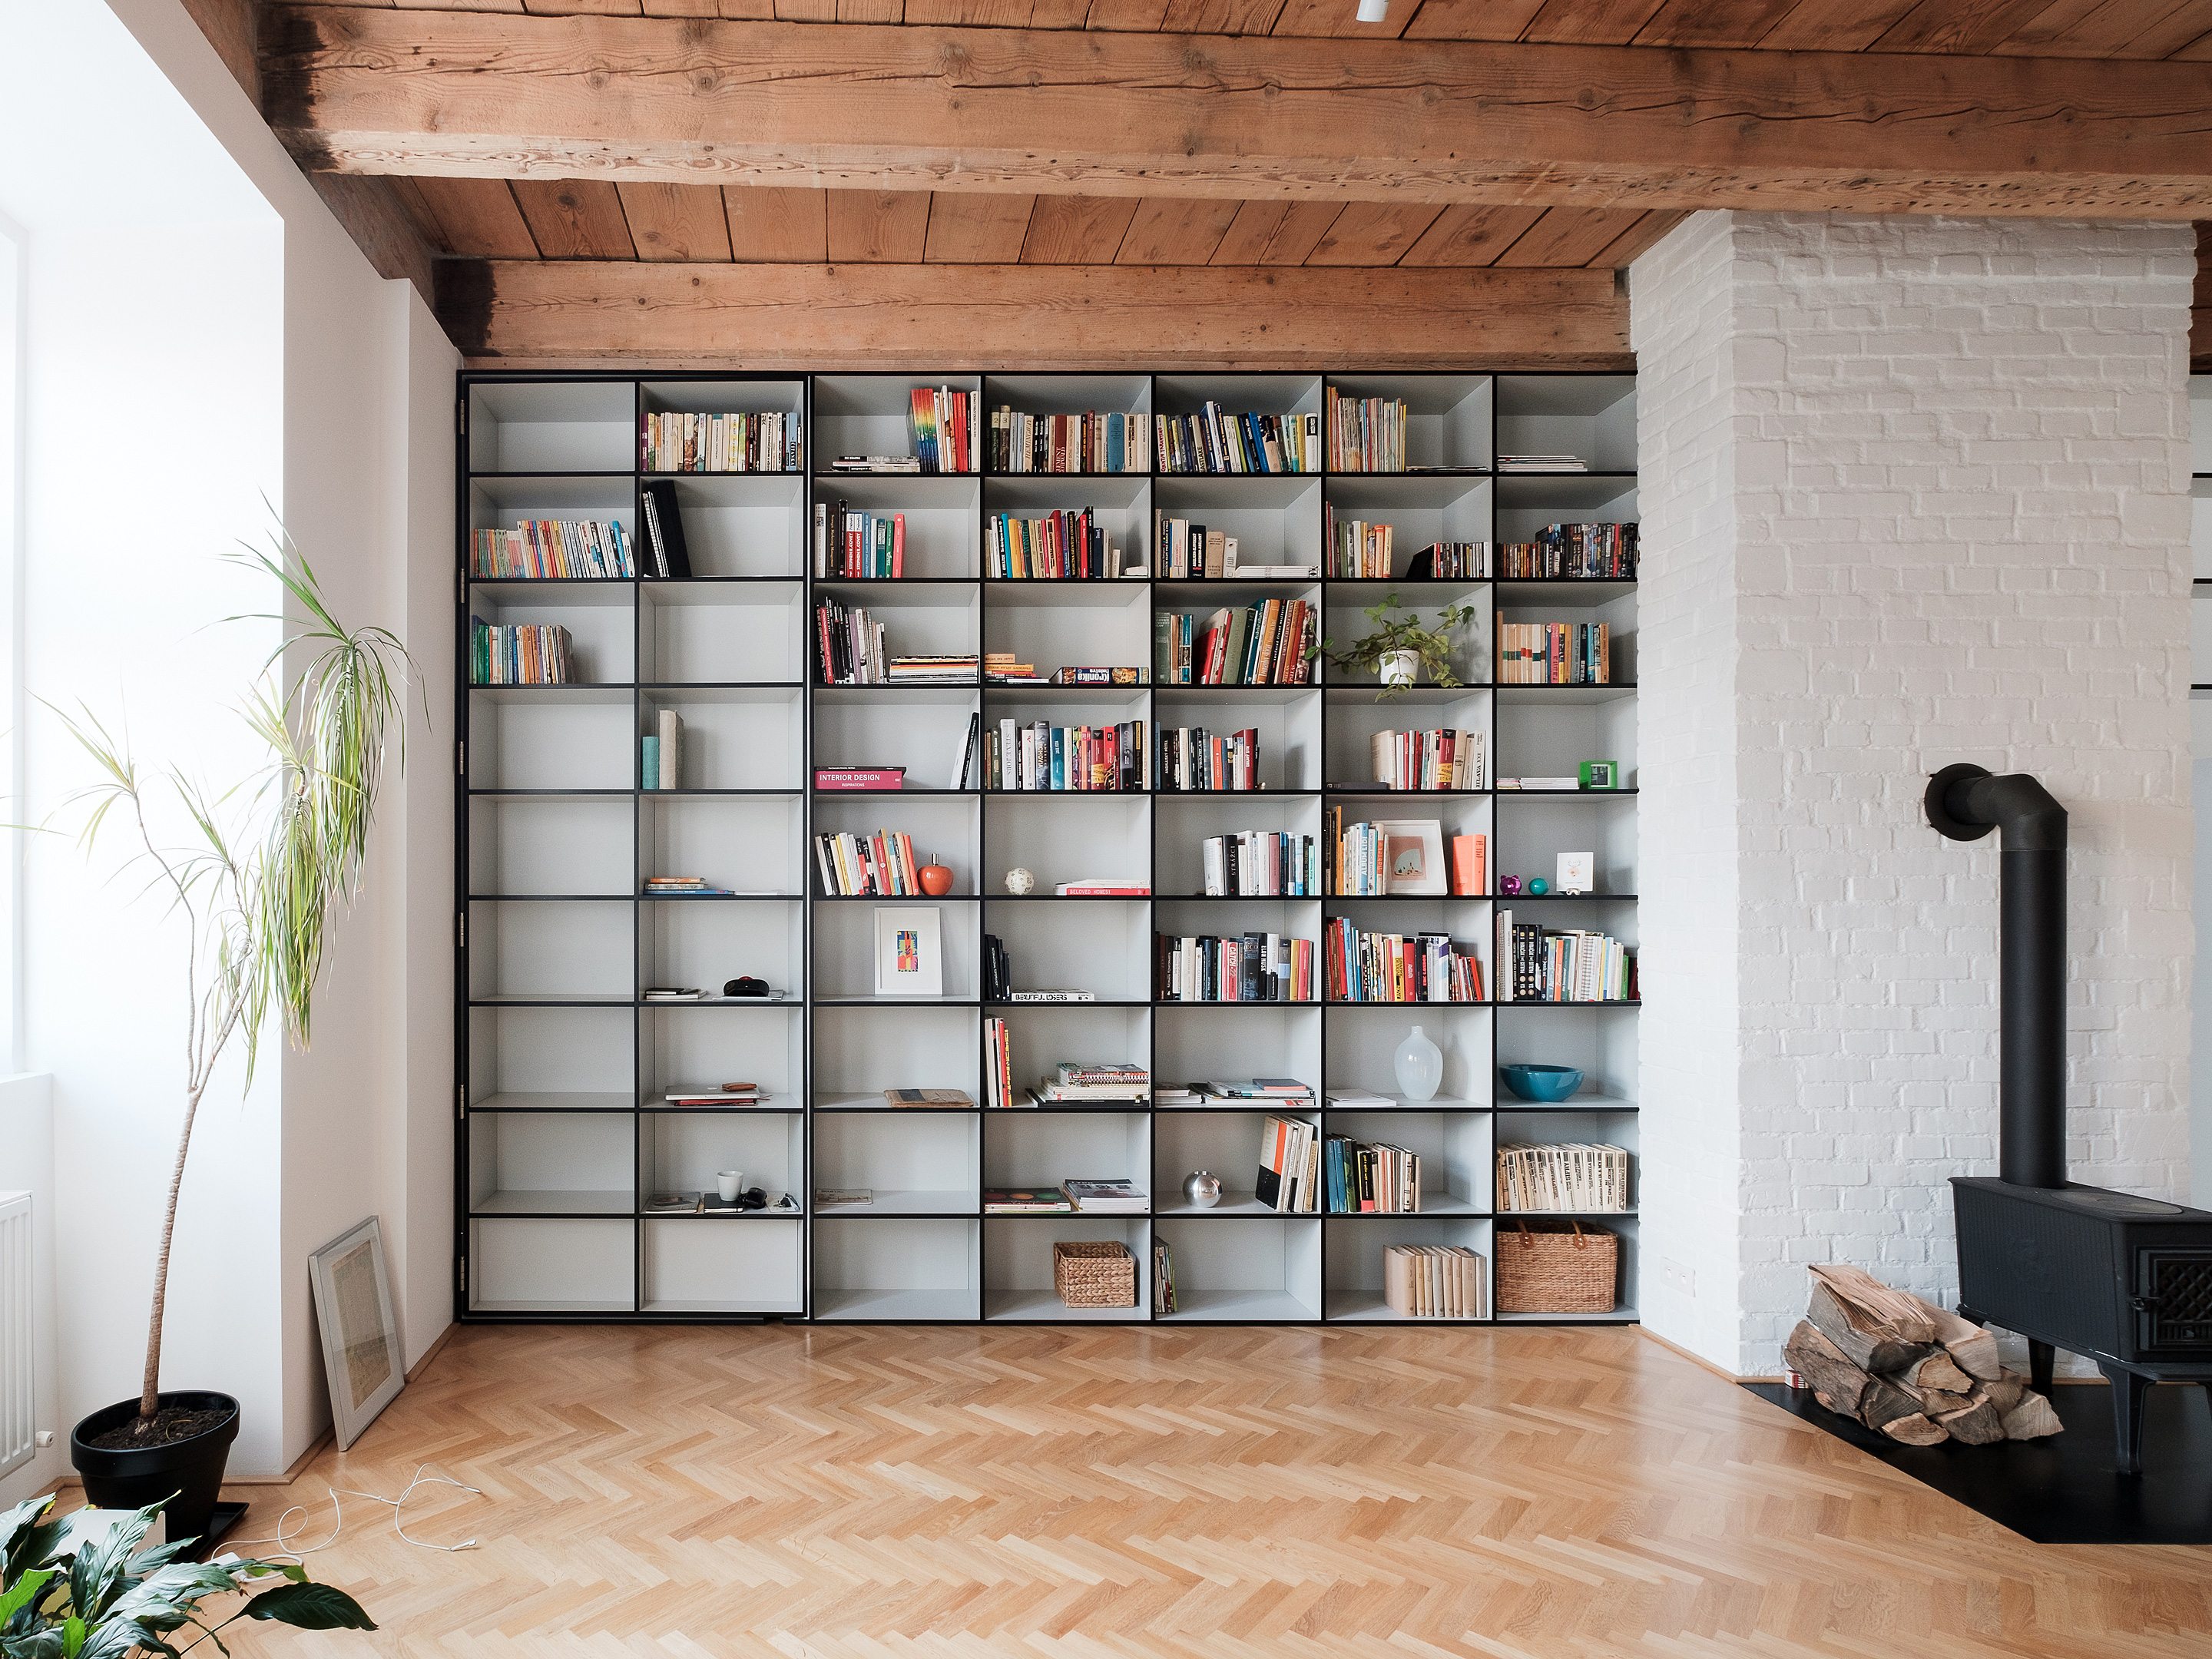 JRKVC Designed Clean And Functional Apartment Using Full Height Bookshelf  As A Space Divider: JRKVC